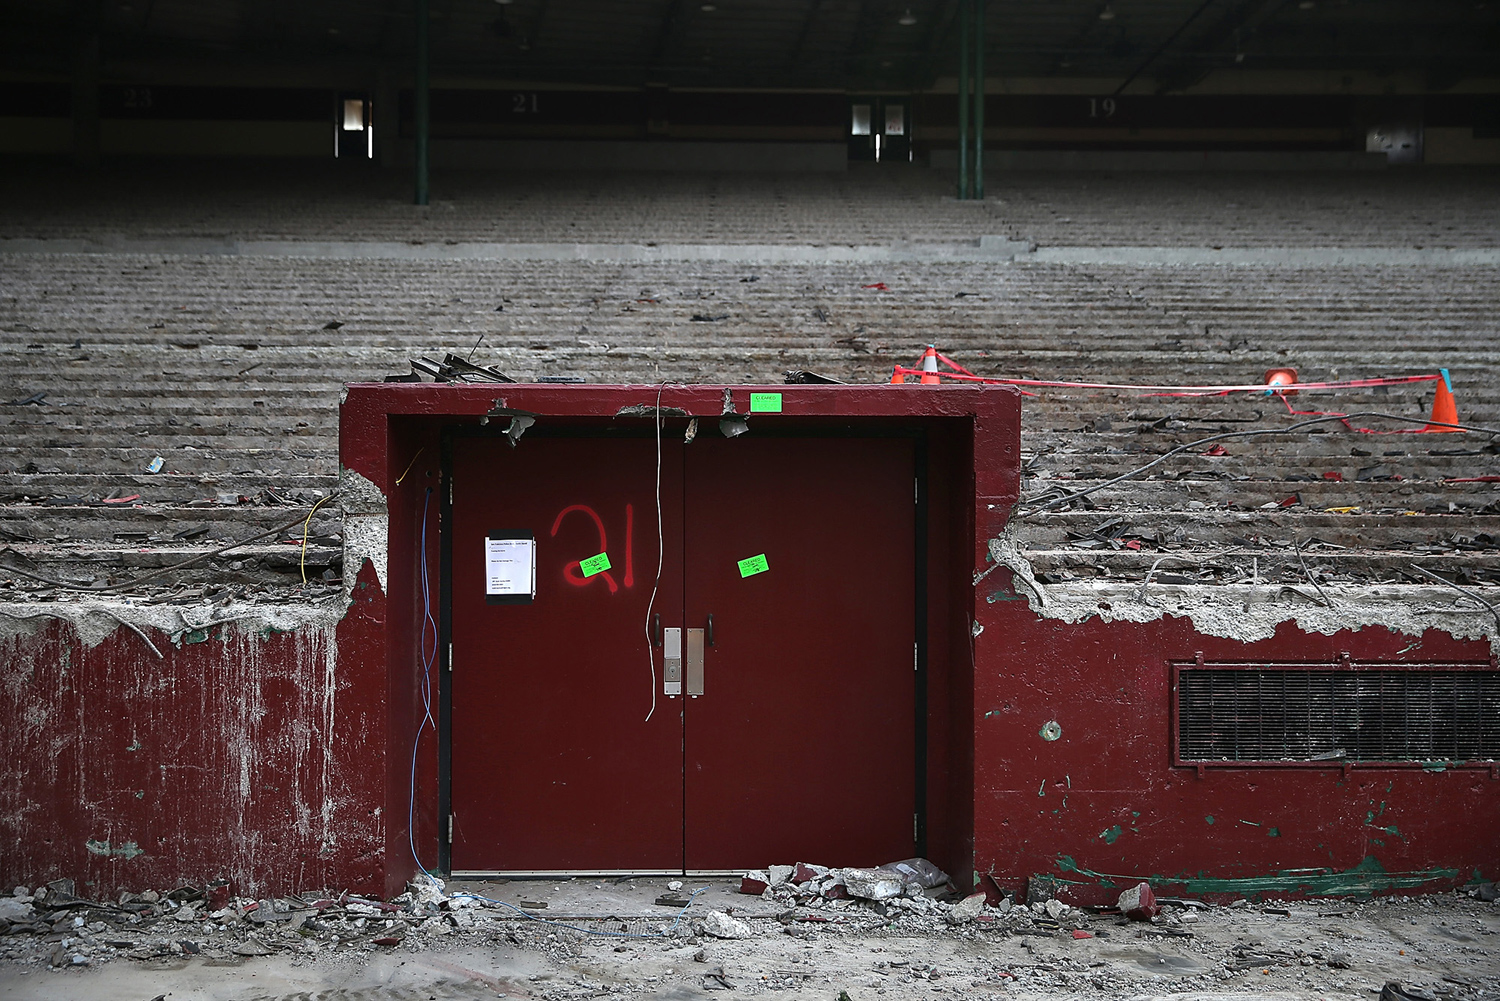 The entrance to the visiting team's locker room remains inside Candlestick Park during demolition on February 4, 2015.